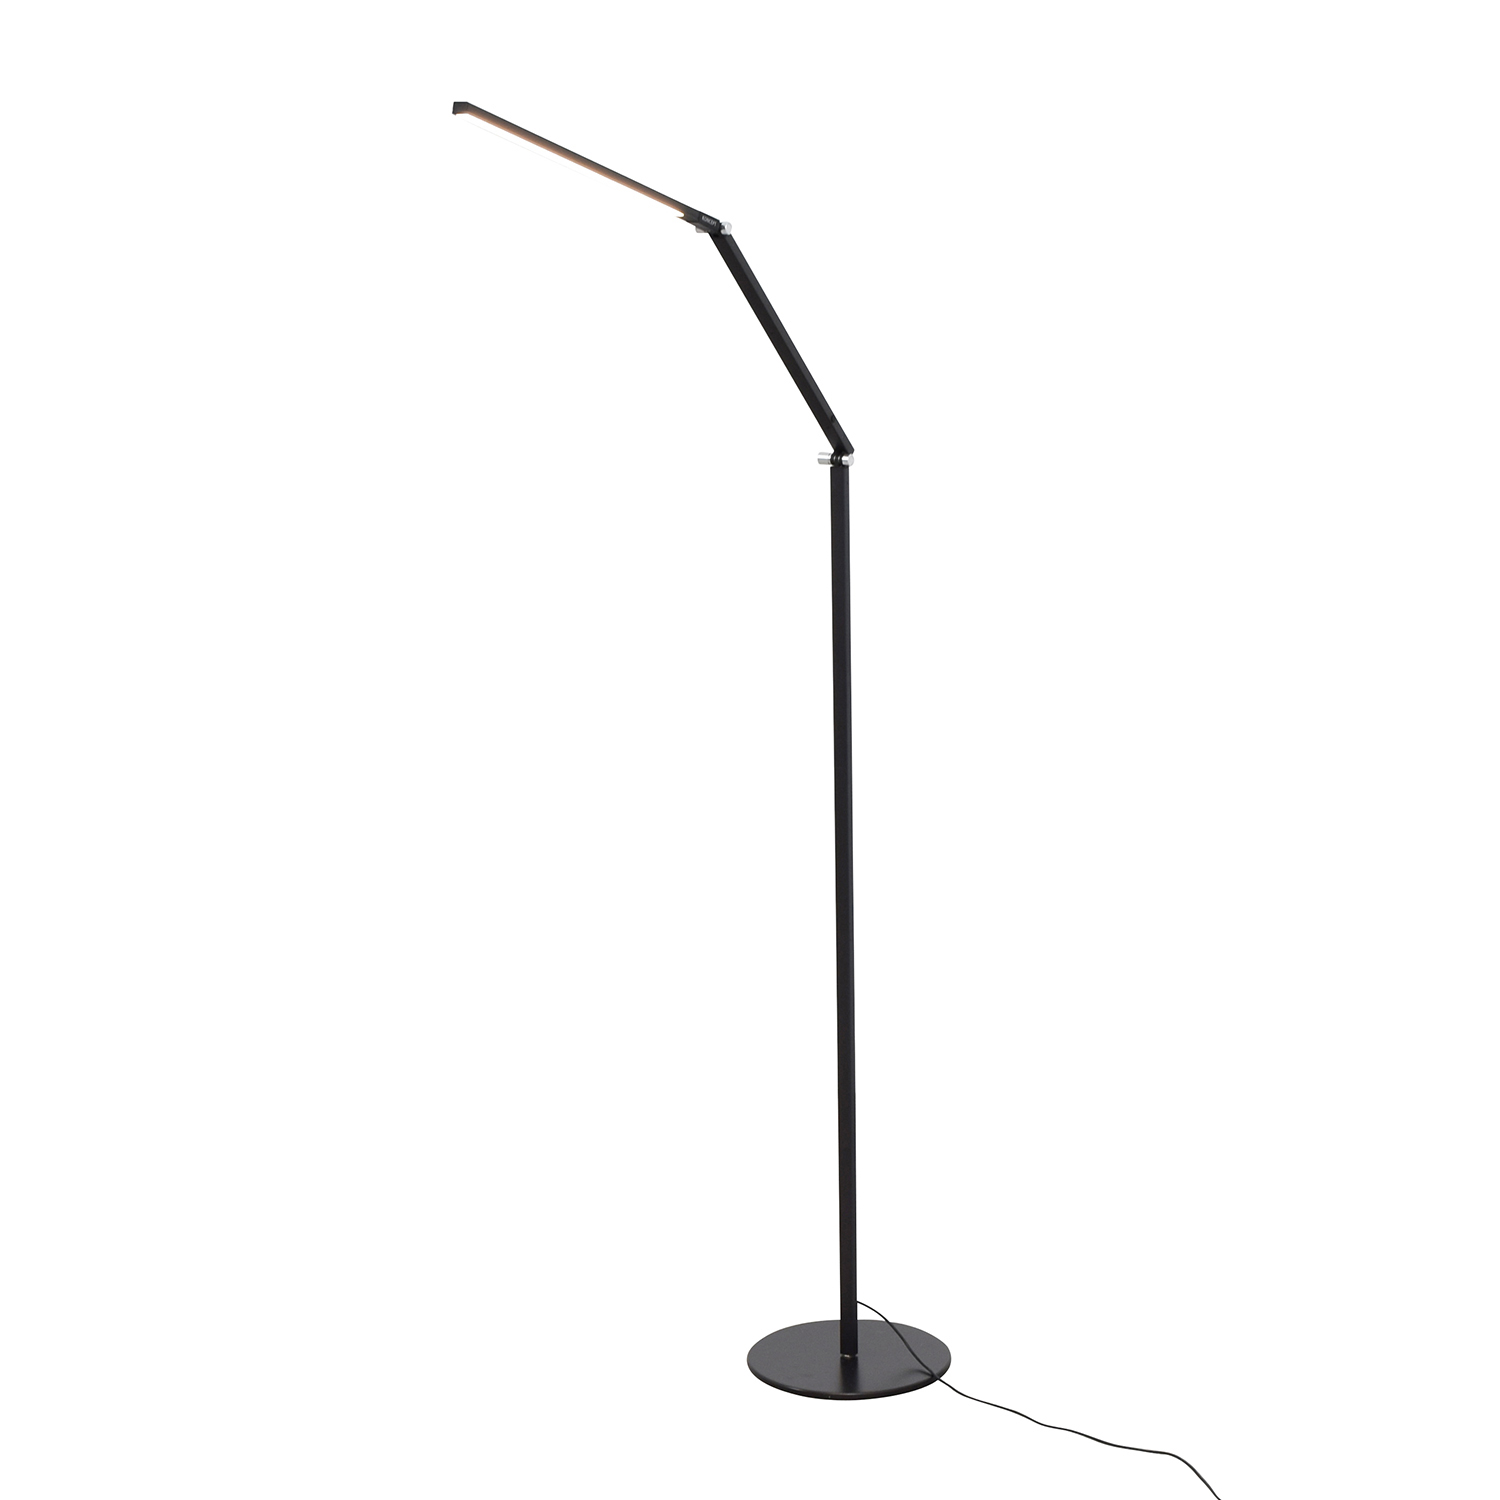 76 off koncept koncept gen 3 z bar warm light led modern floor koncept gen 3 z bar warm light led modern floor lamp black lamps aloadofball Gallery